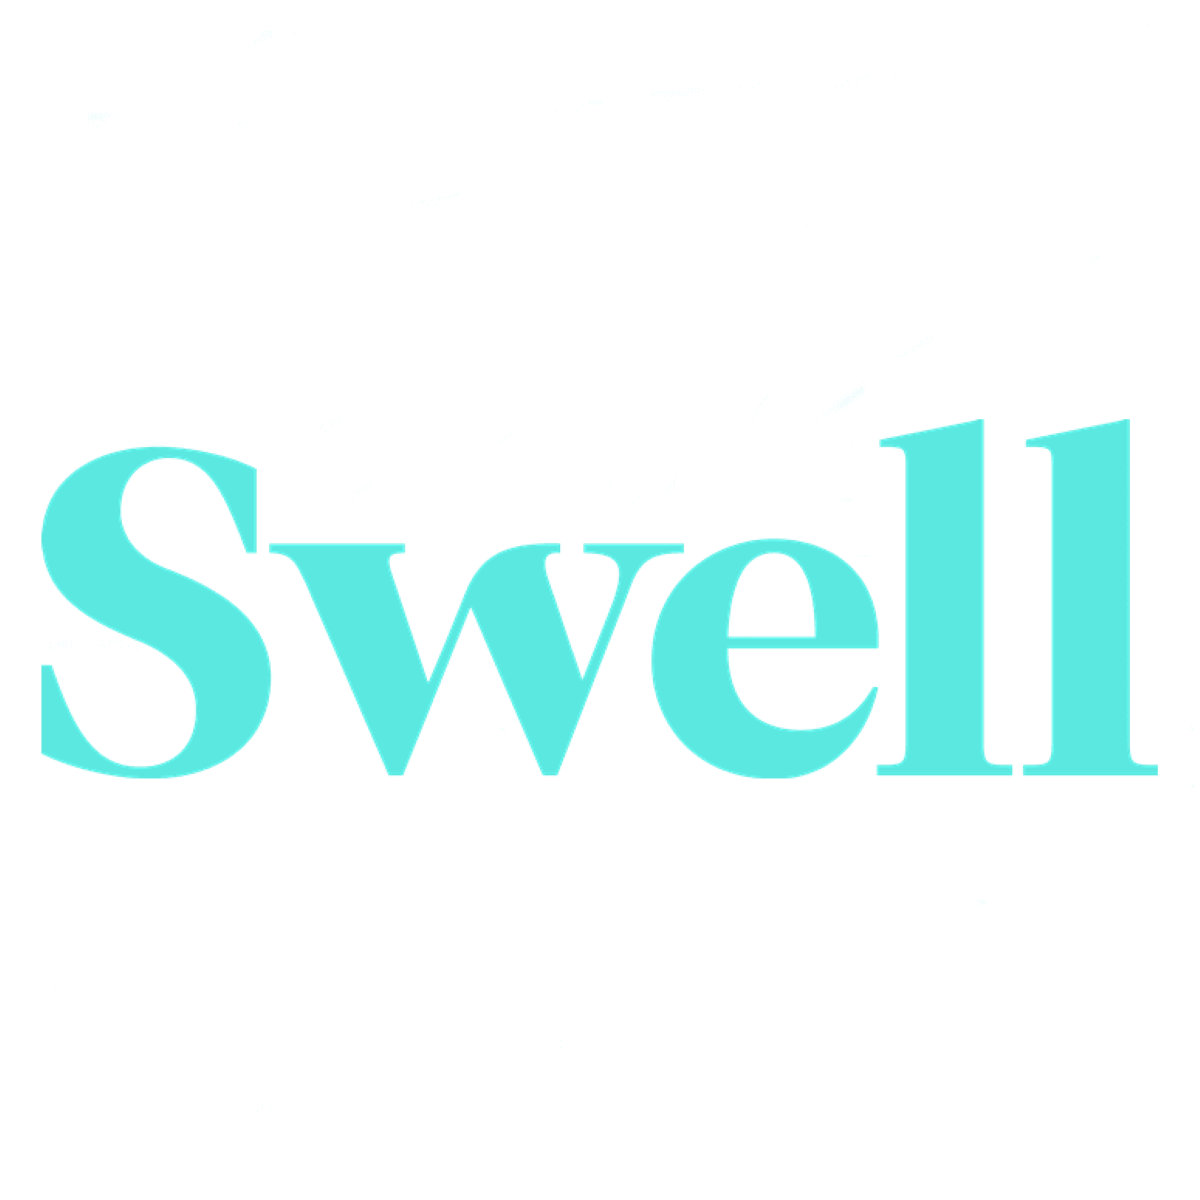 Swell Investing, is it for you?